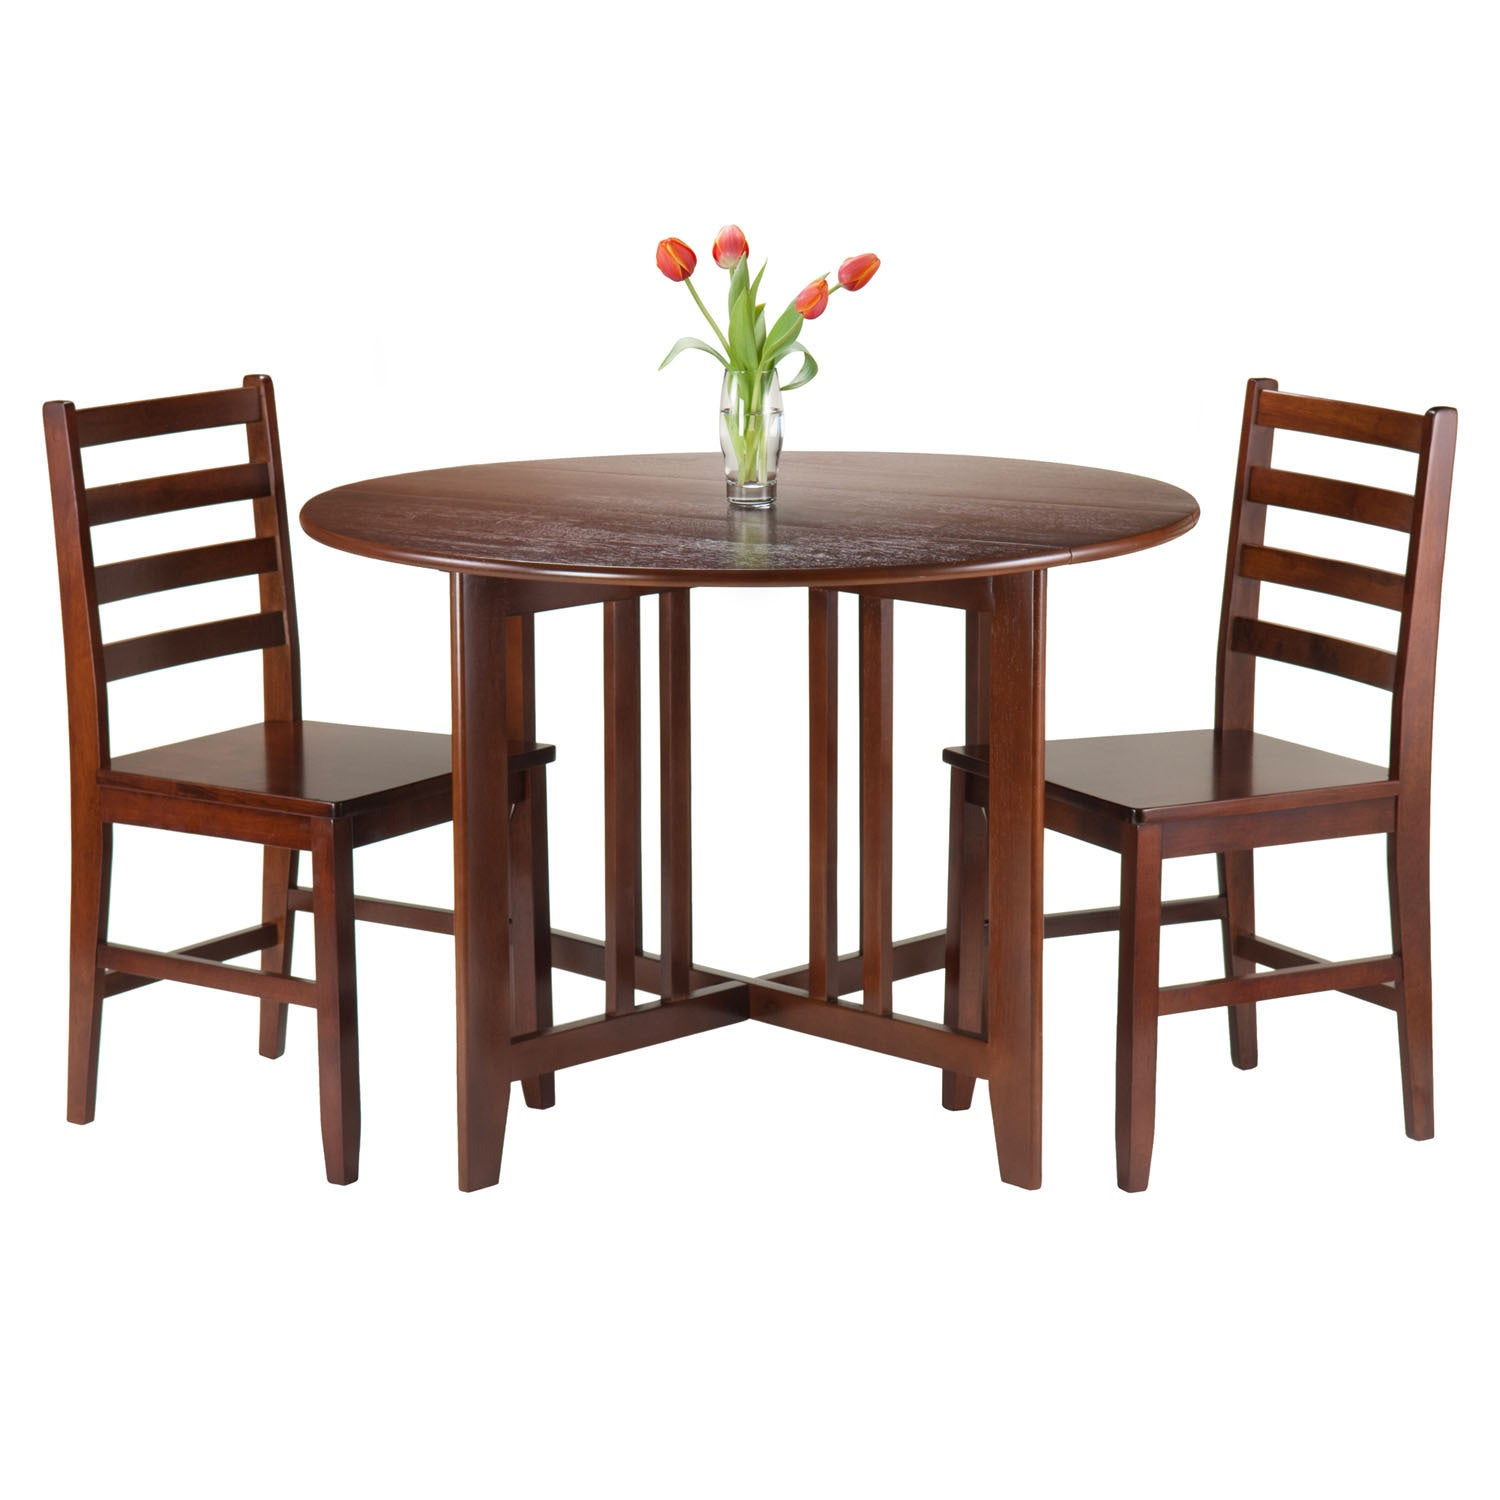 Winsome Brown Wood 3-piece Alamo Round Drop-leaf Table wi...